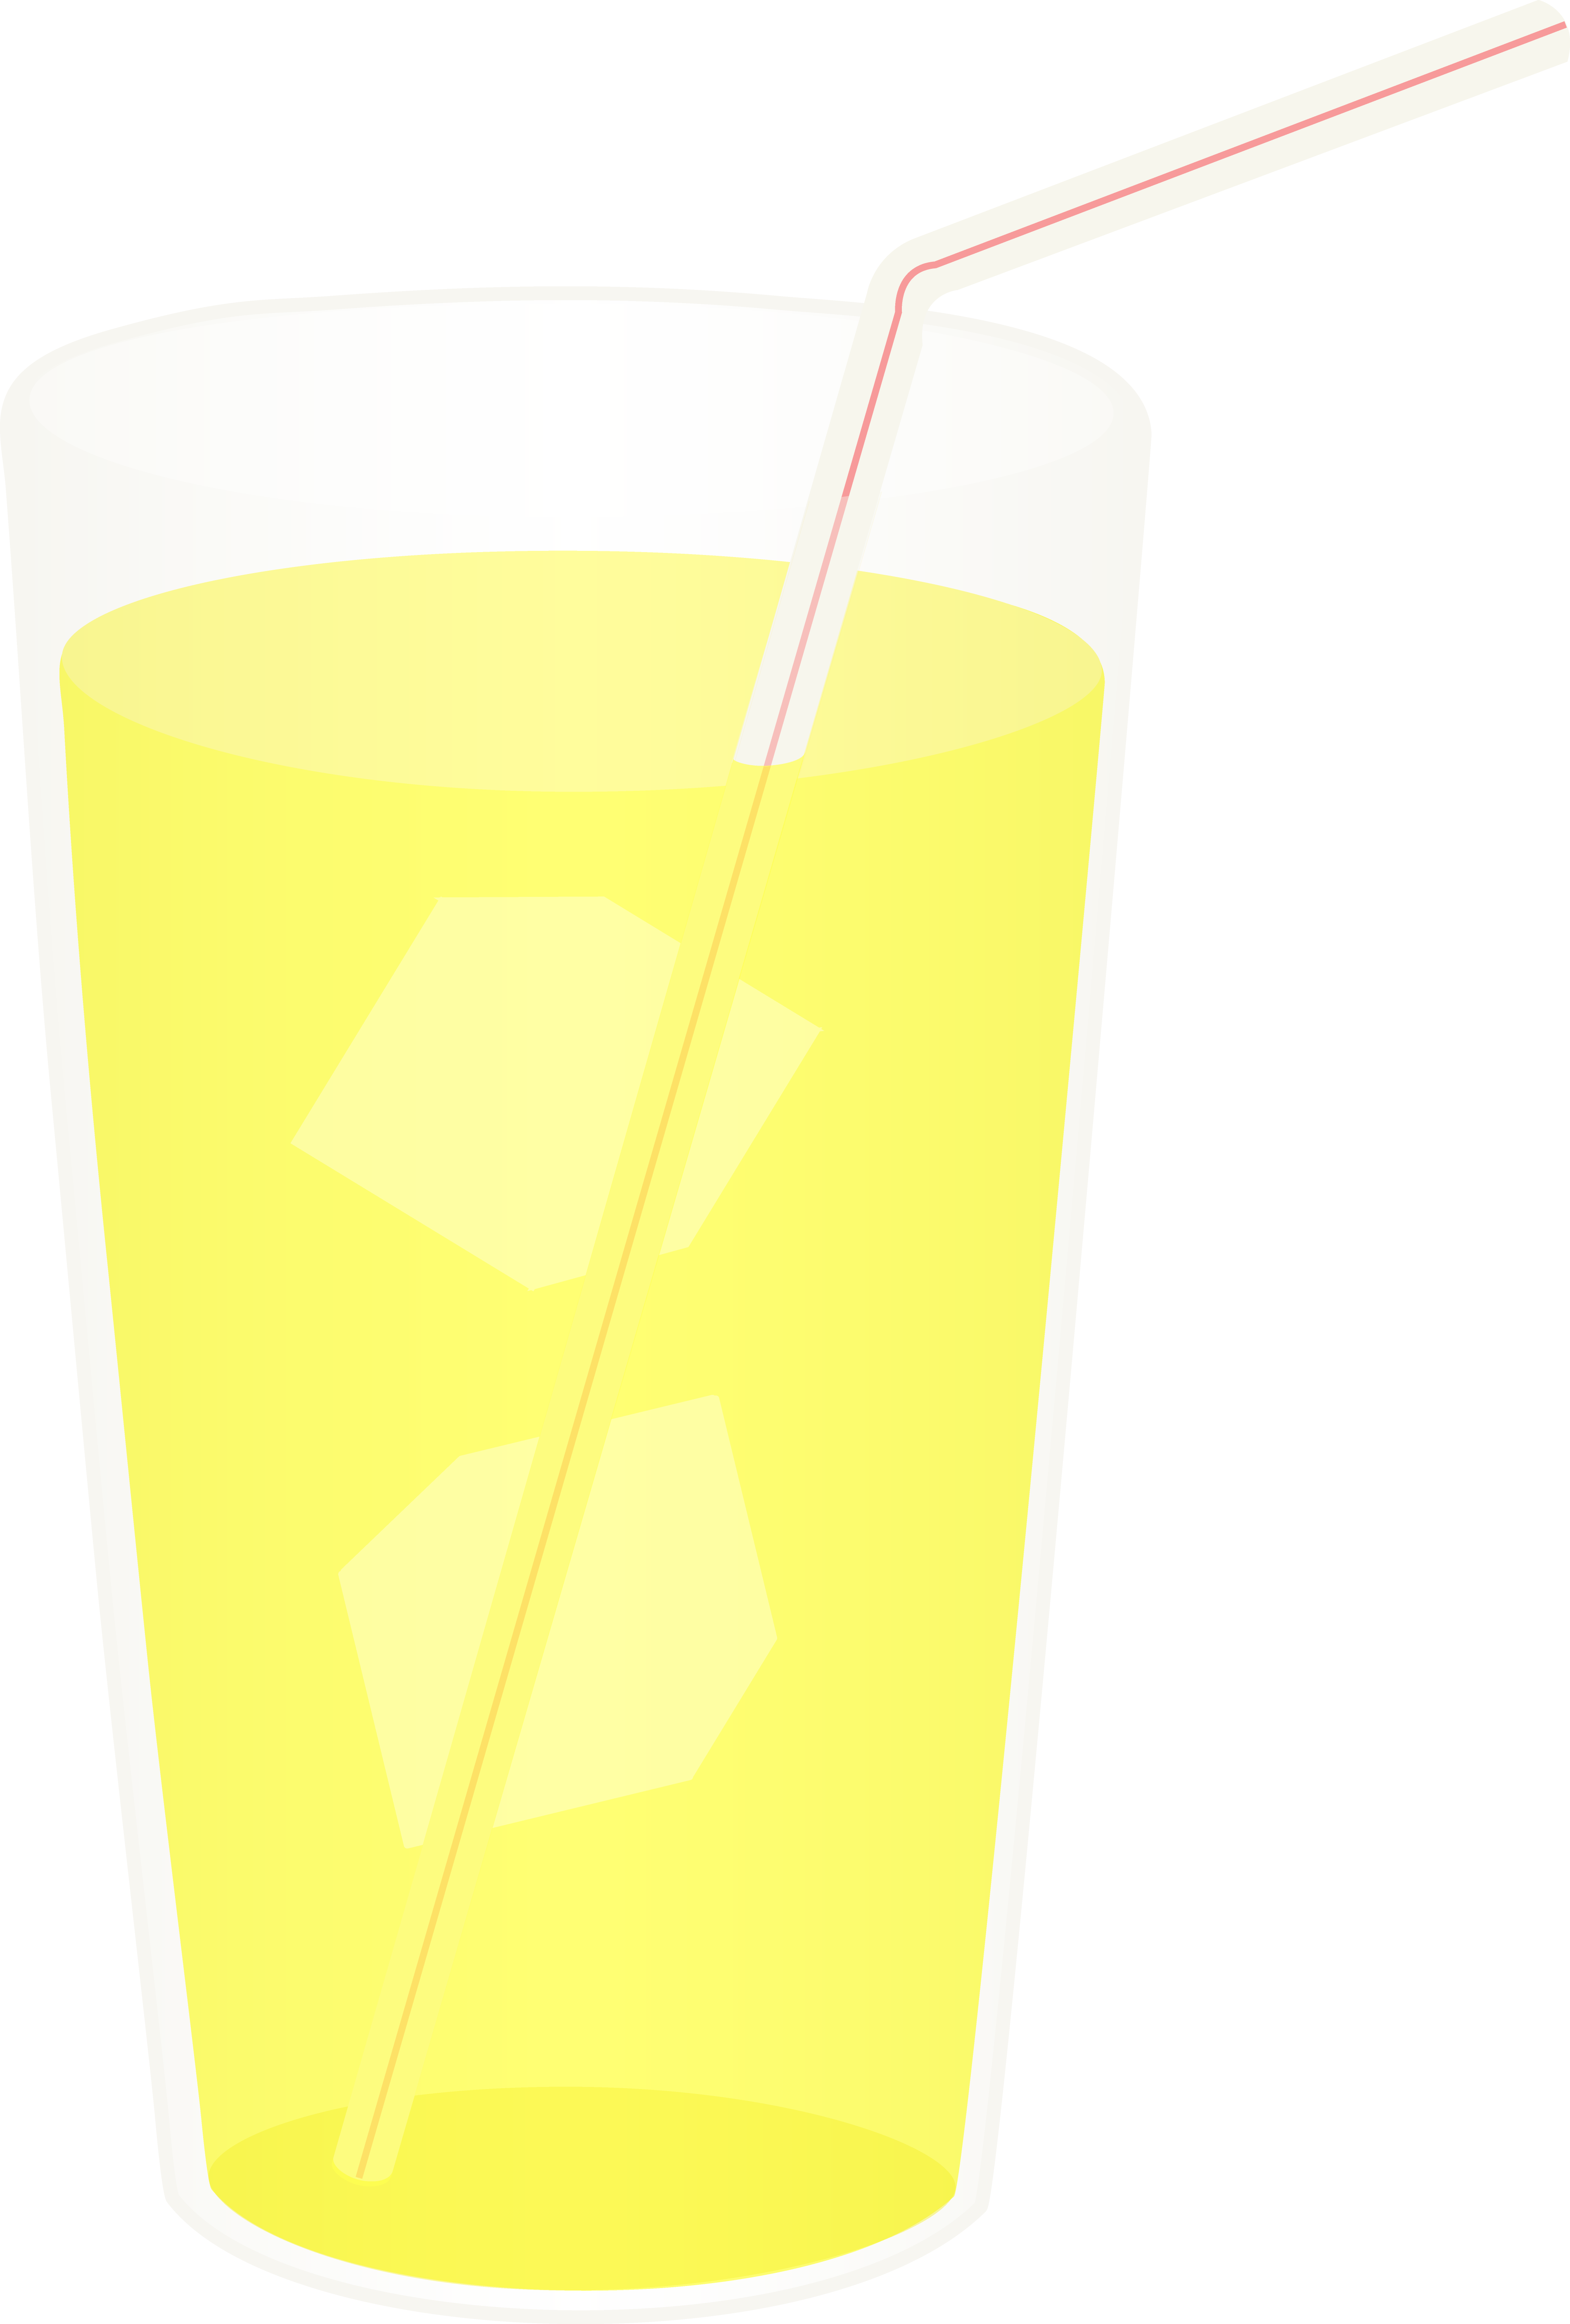 png transparent download Lemonade clipart cup lemonade. Glass of iced free.